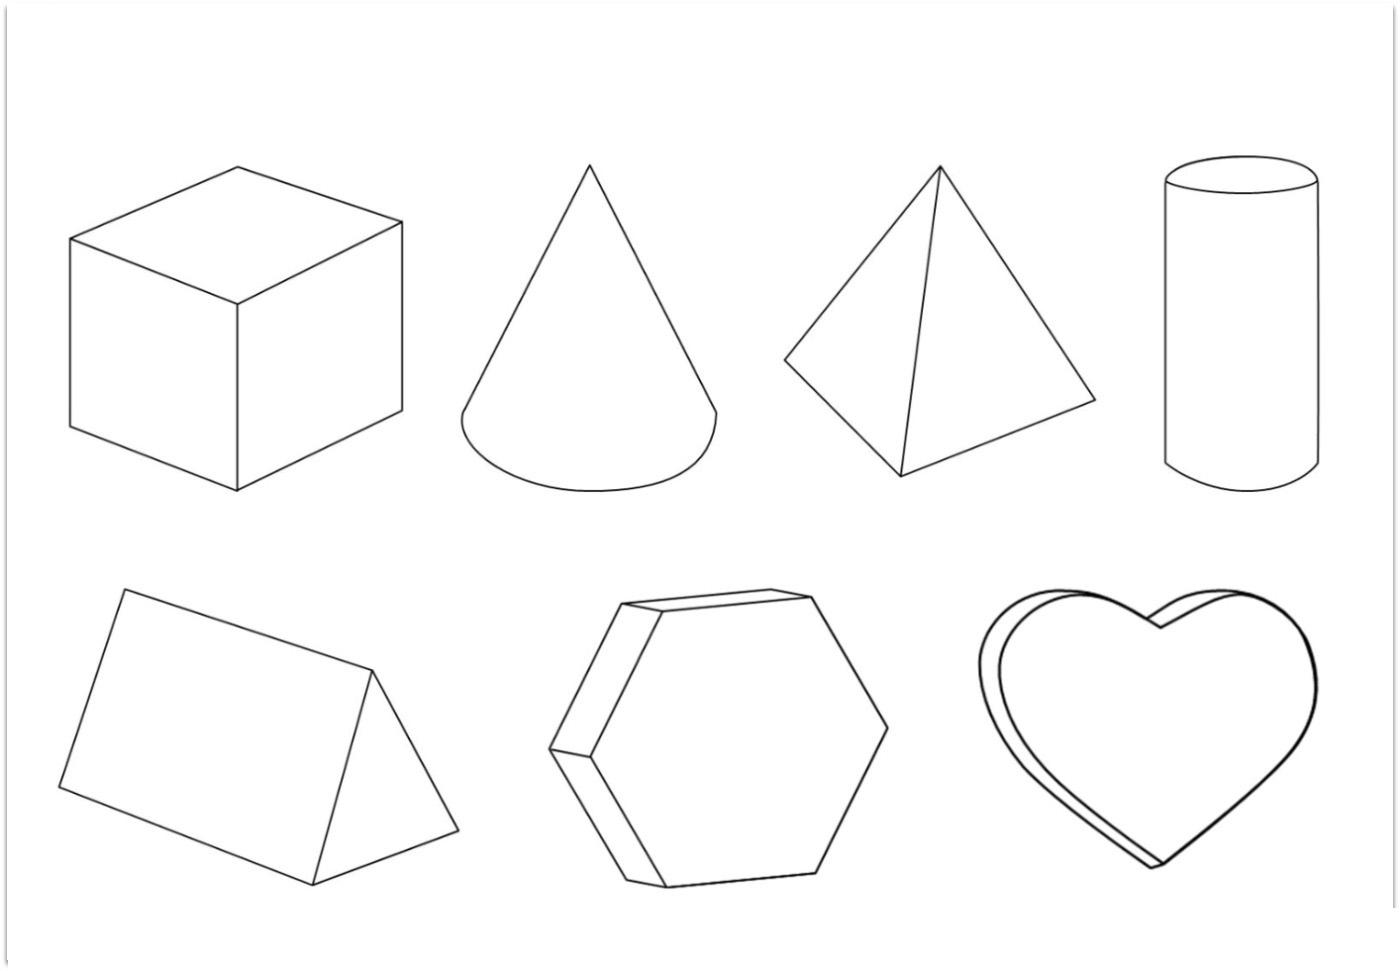 Coloring geometric shapes made of paper volumetric geometric shapes circuit patterns